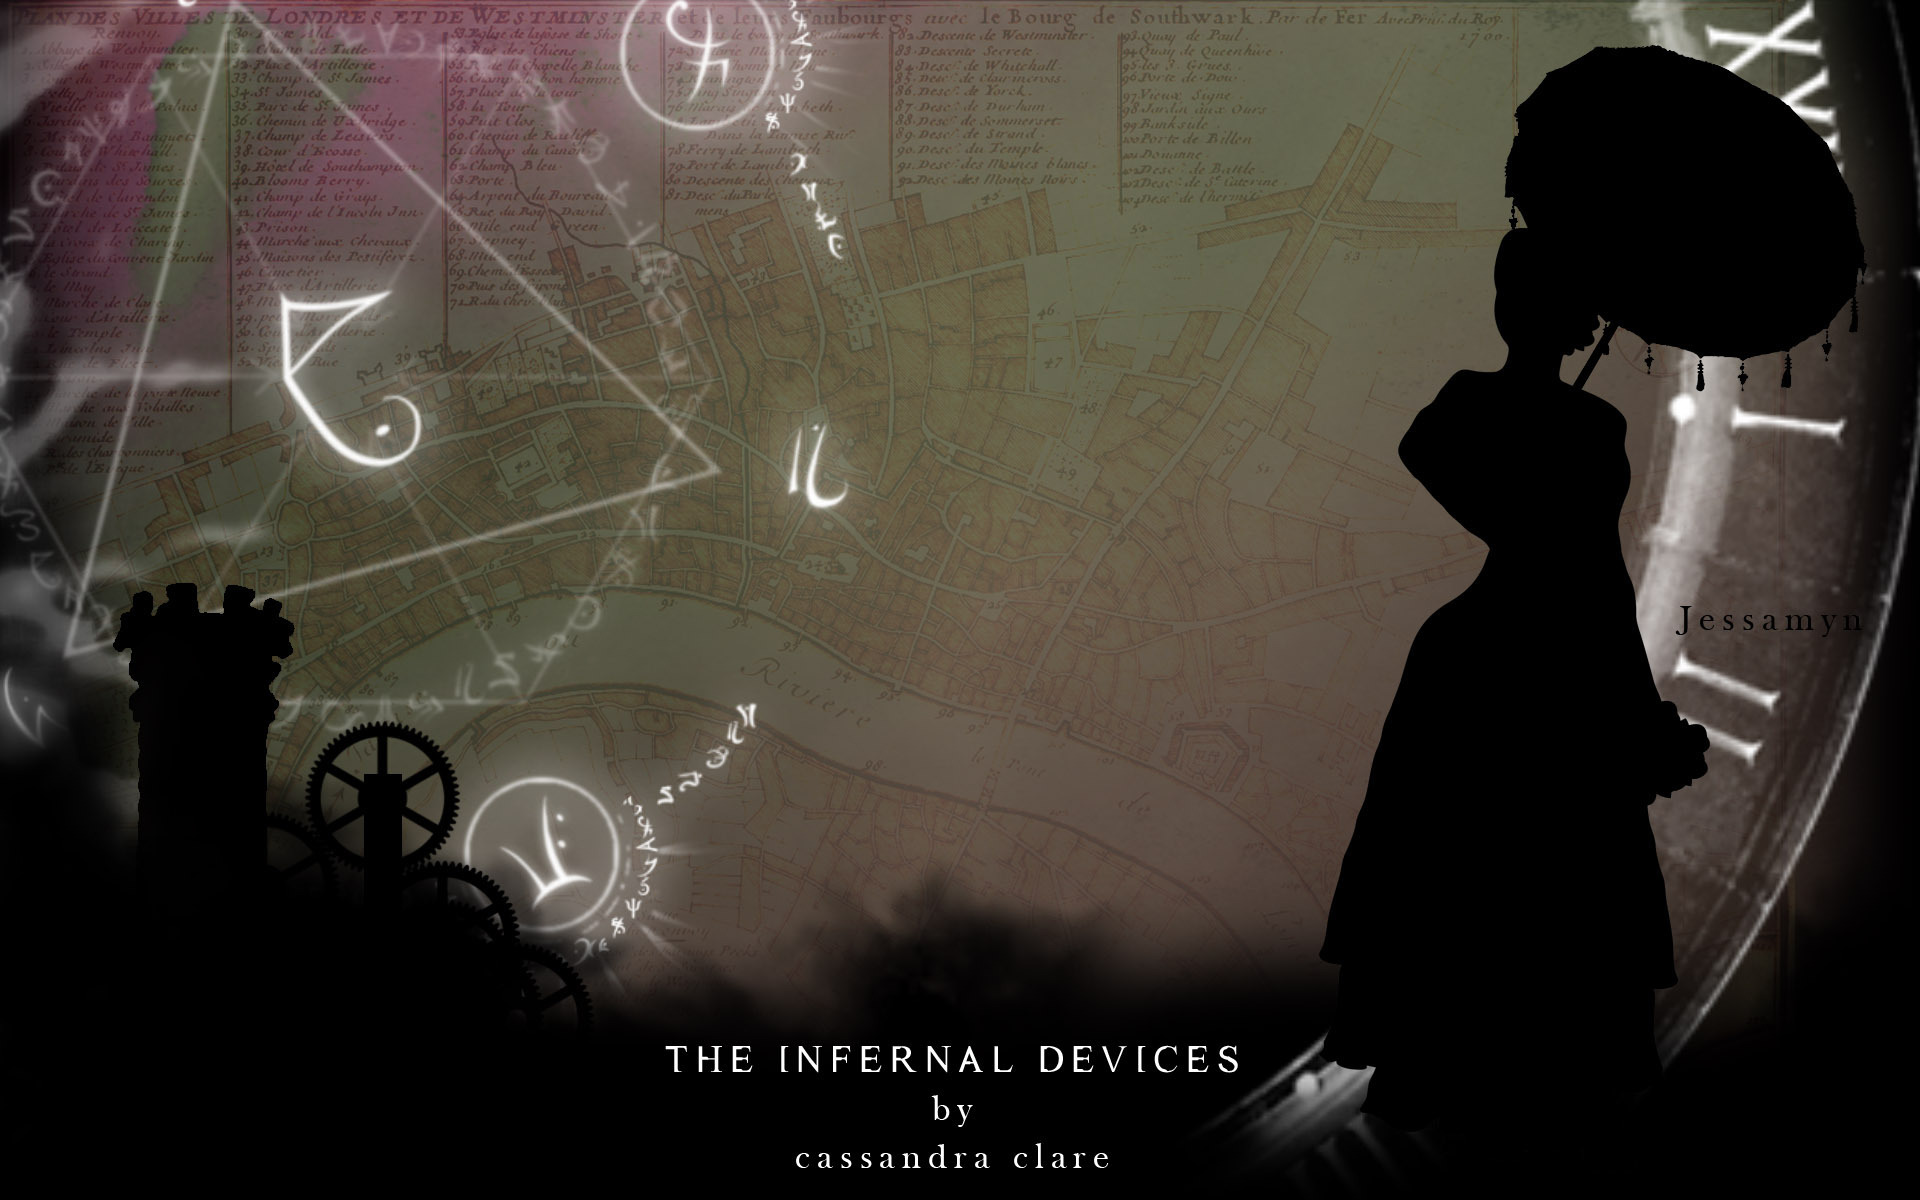 The Infernal Devices Quotes Wallpaper The Infernal Devices Images Id Wallpapers Wallpaper Photos